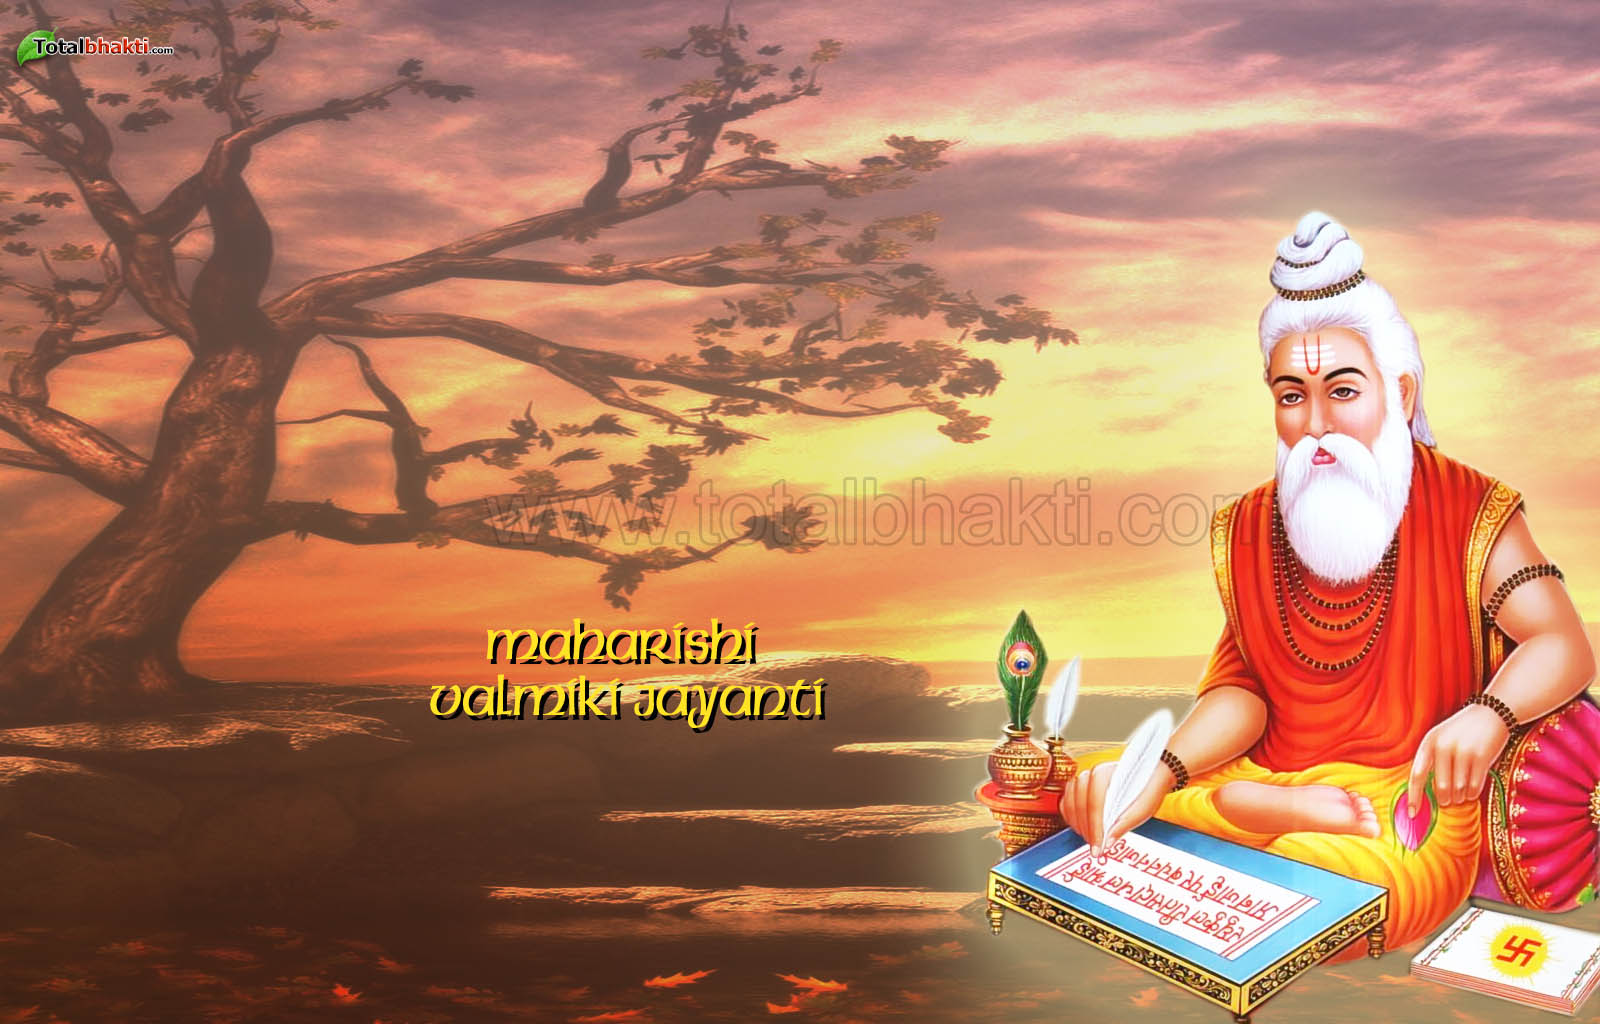 Hd wallpaper valmiki - Maharishi Valmiki Jayanti Wishes Pictures Images For Whatsapp Hike Facebook